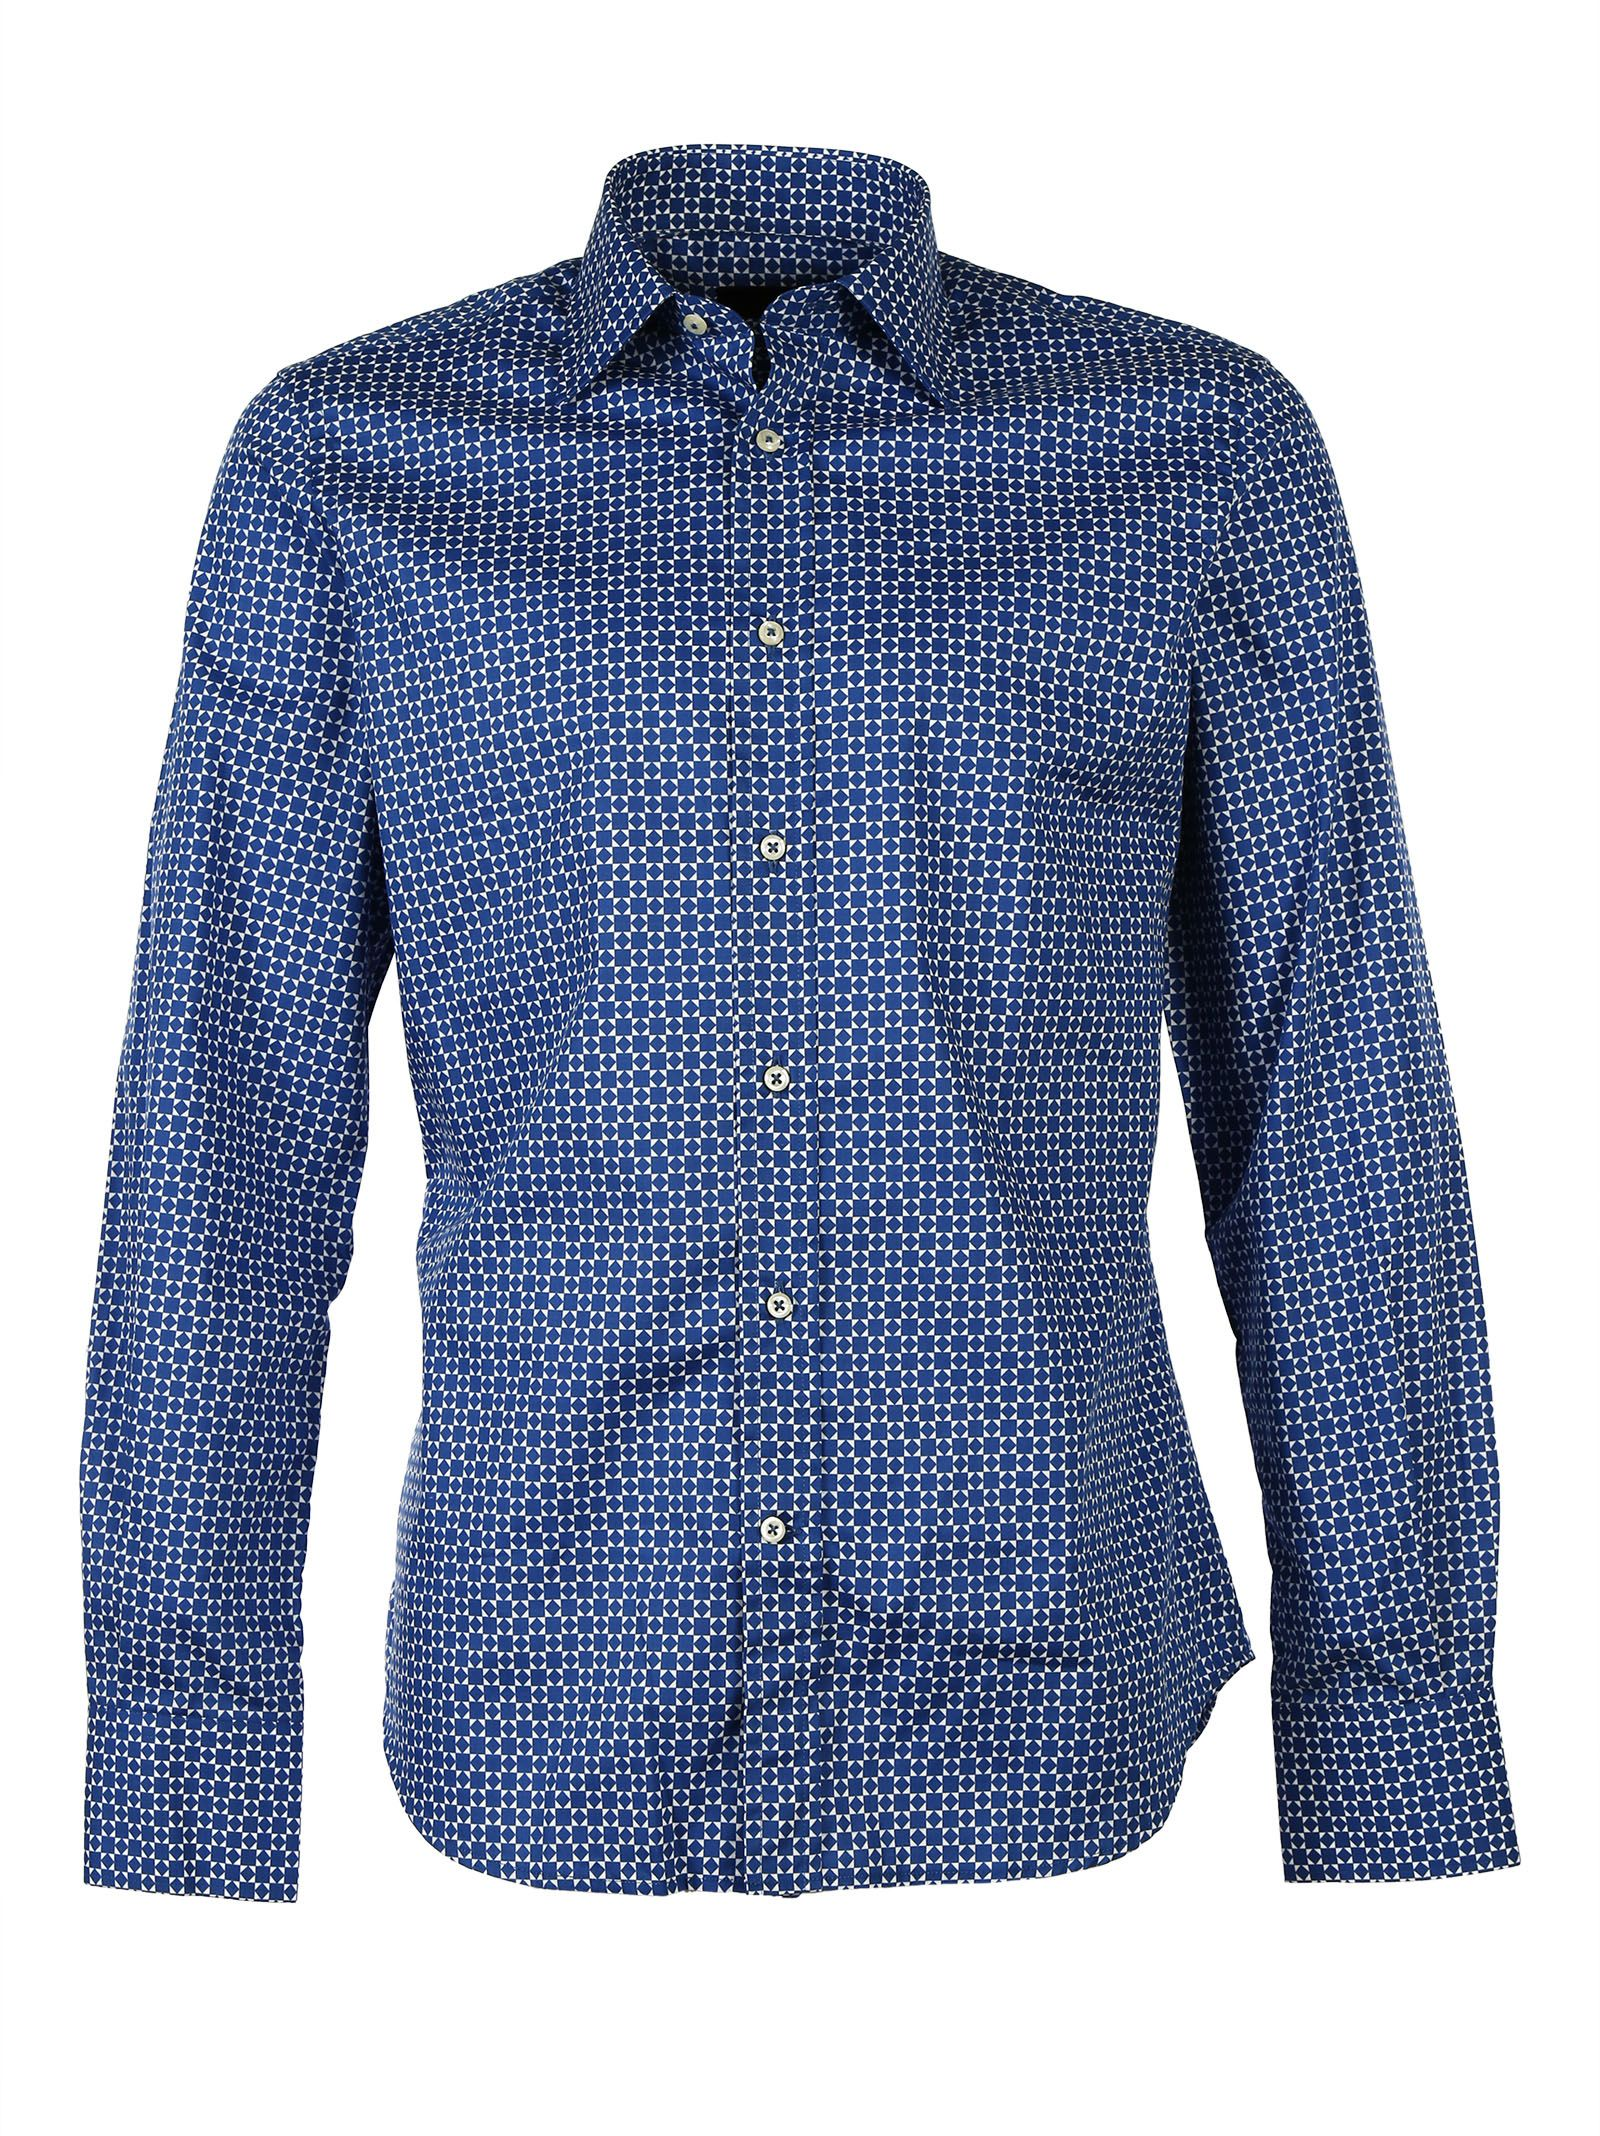 Luchino Camicie Cotton Slimfit Shirt